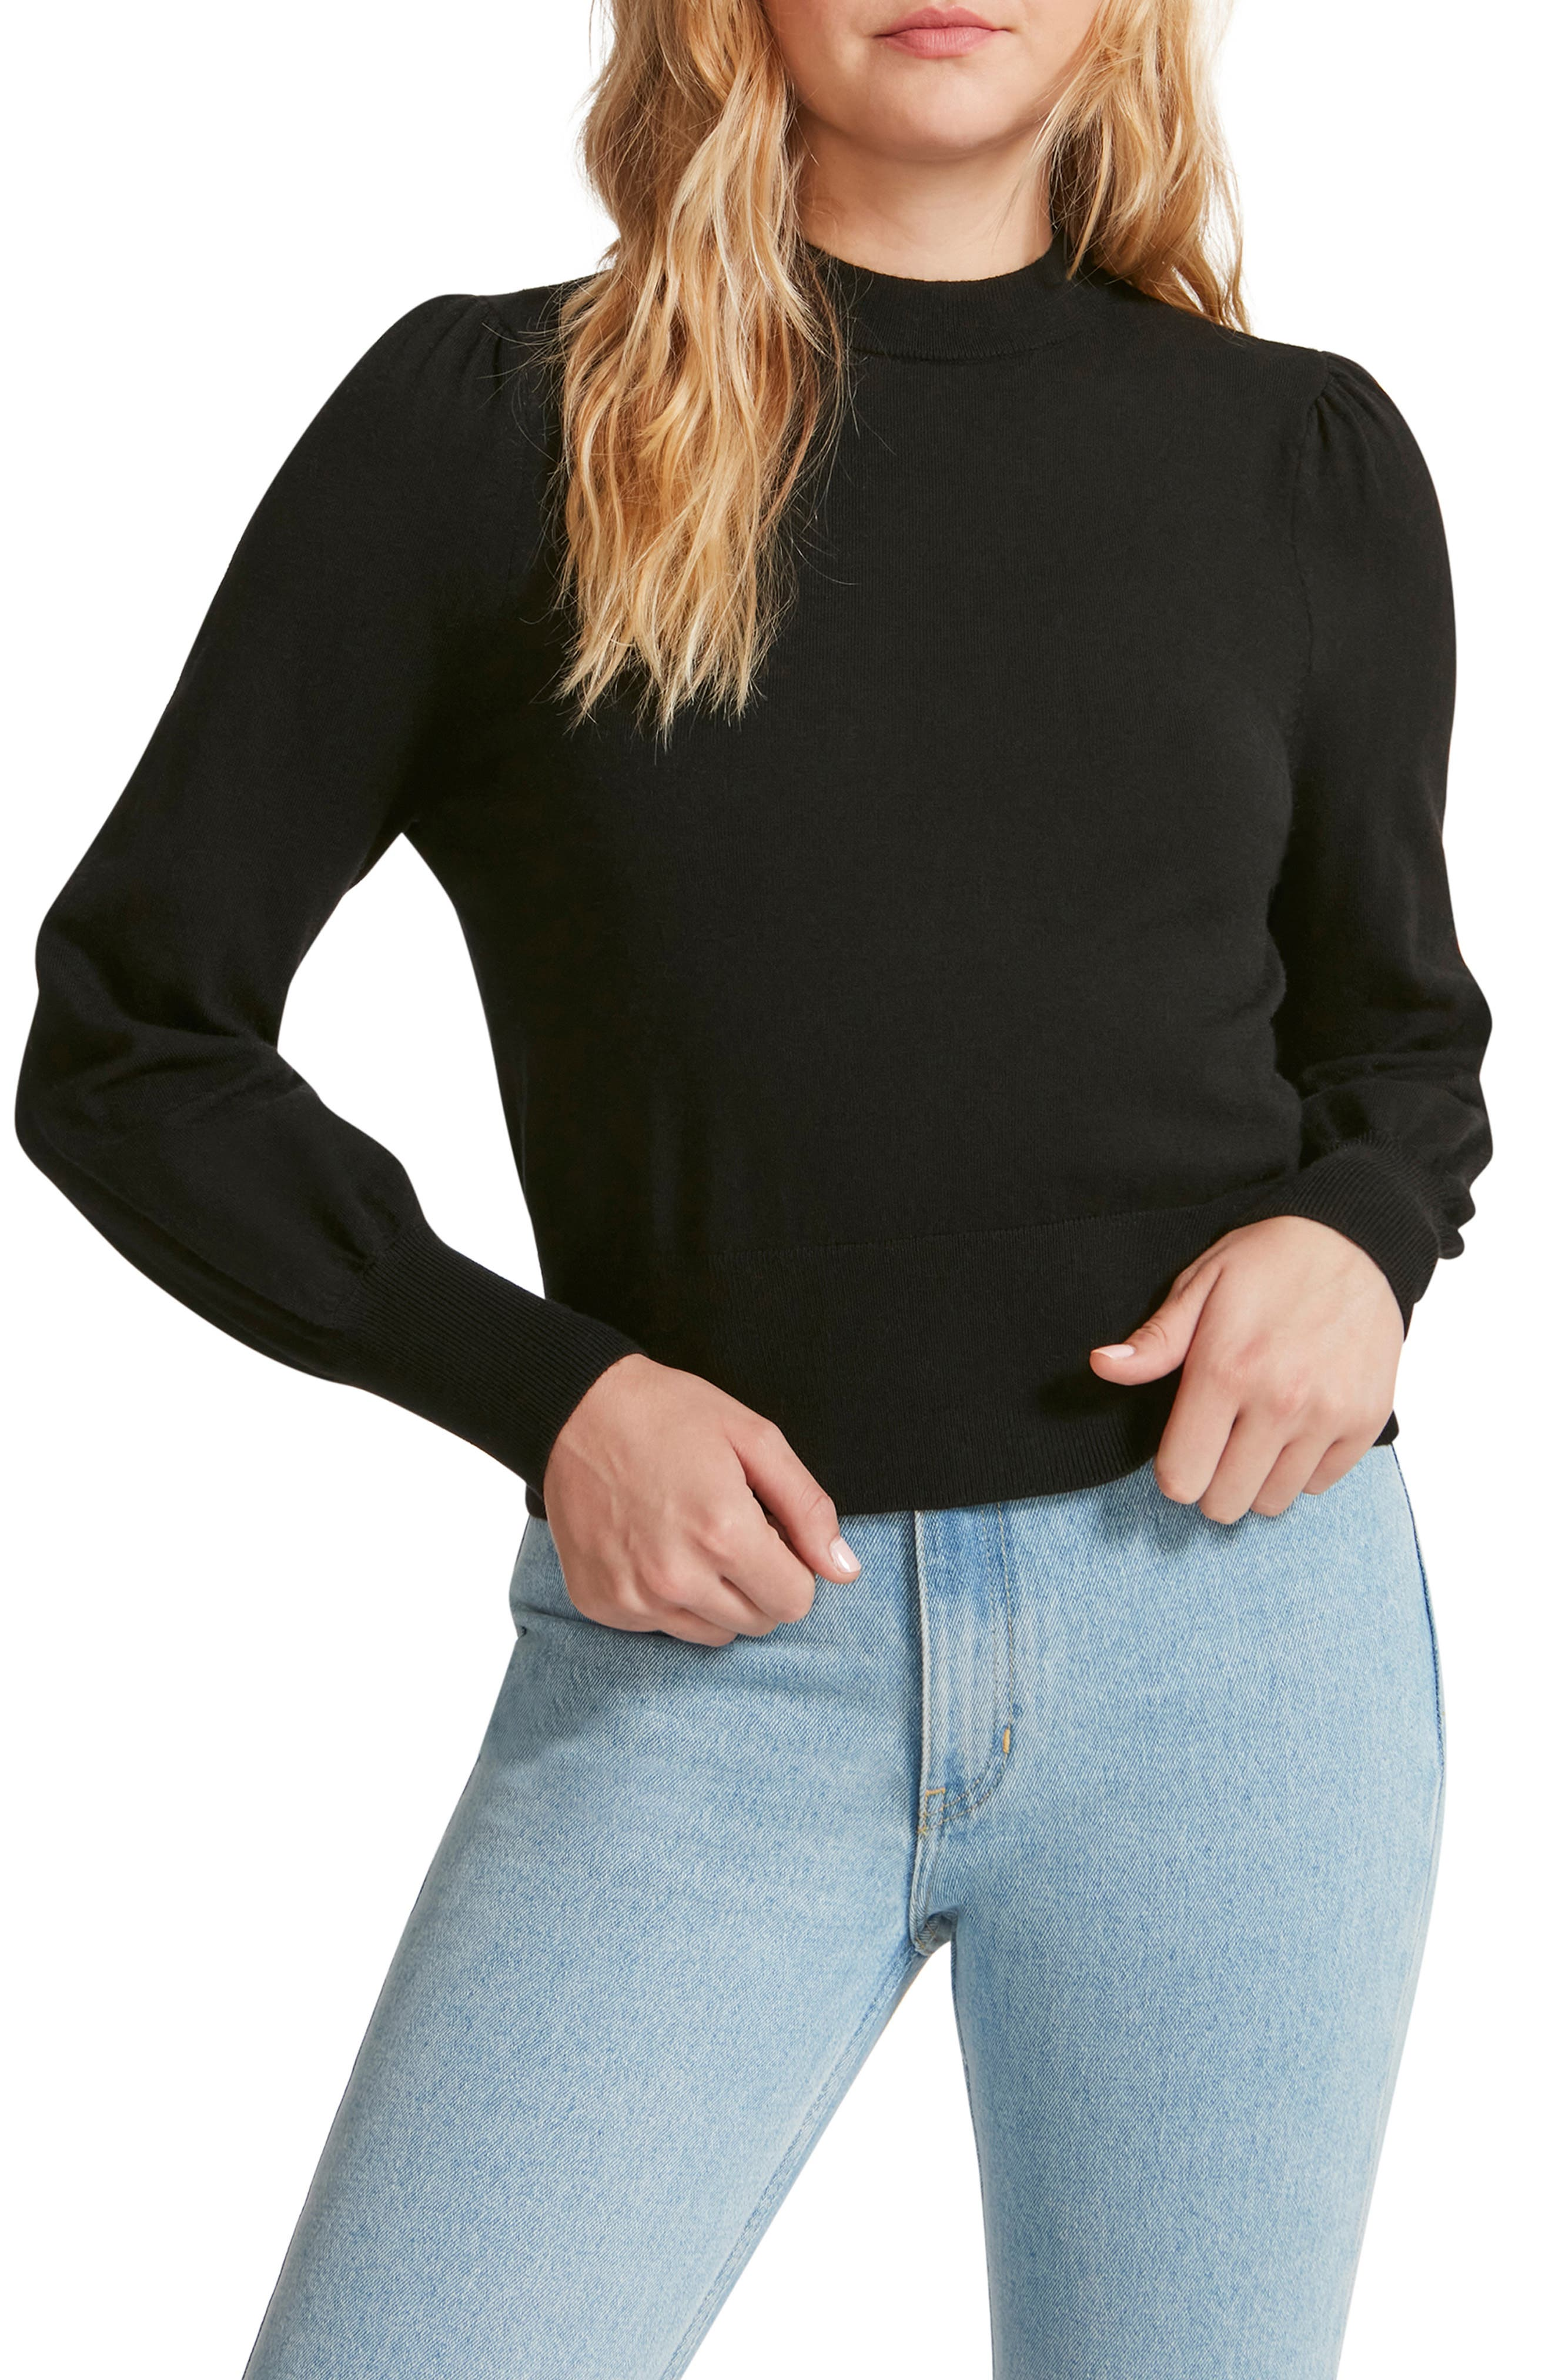 Respectfully Yours Bishop Sleeve Sweater